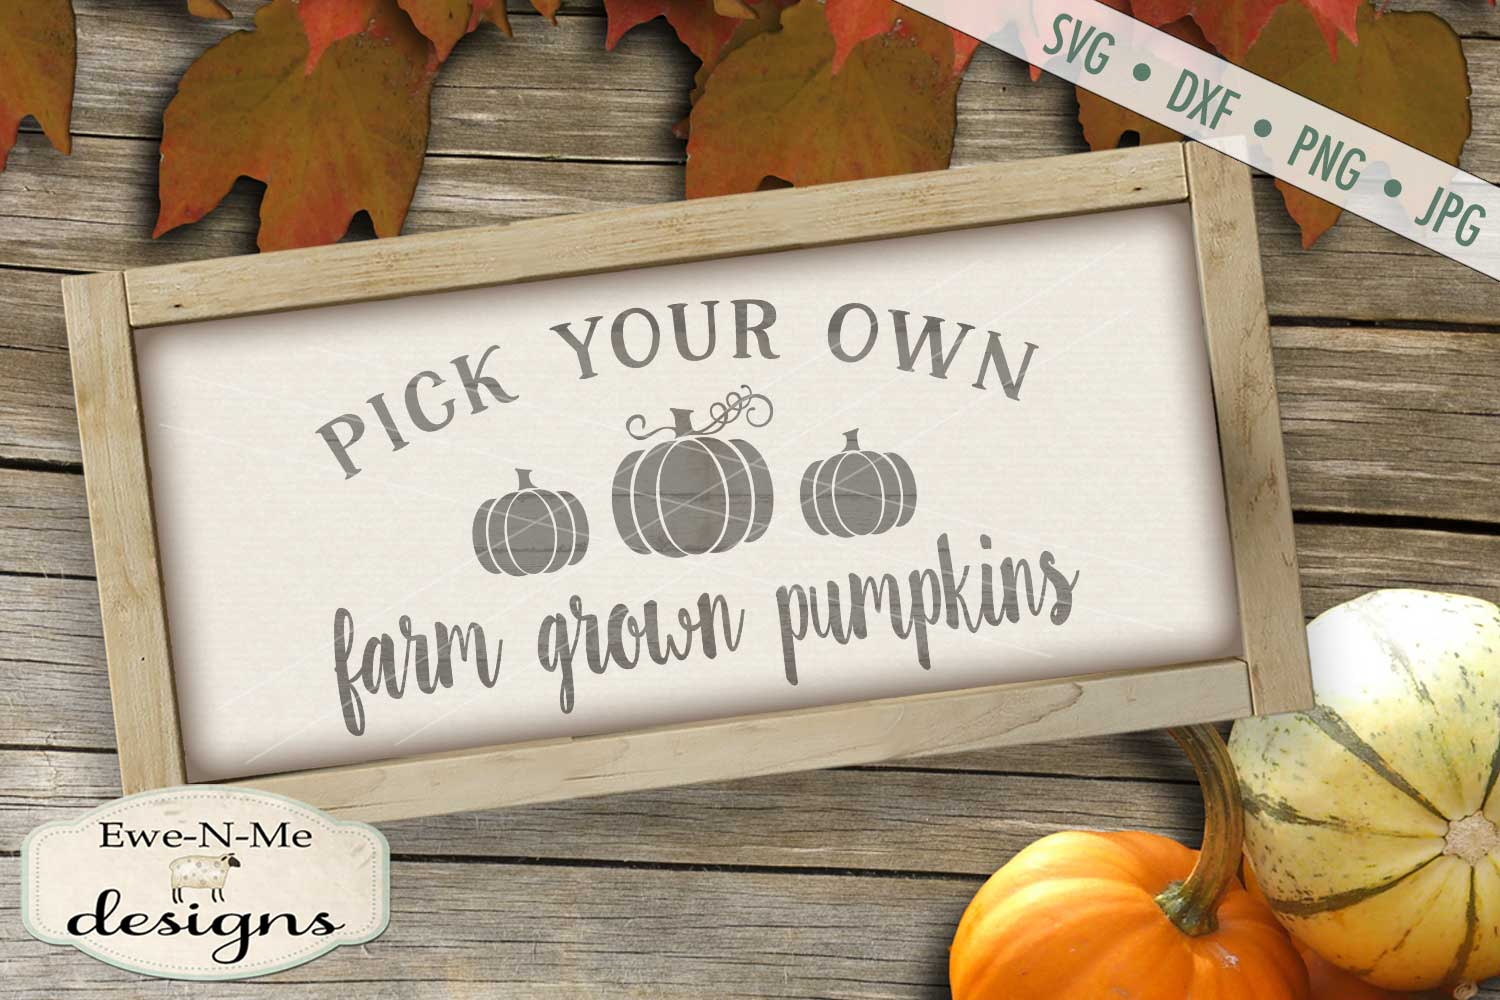 Pick Your Own Farm Grown Pumpkins SVG DXF Files example image 1